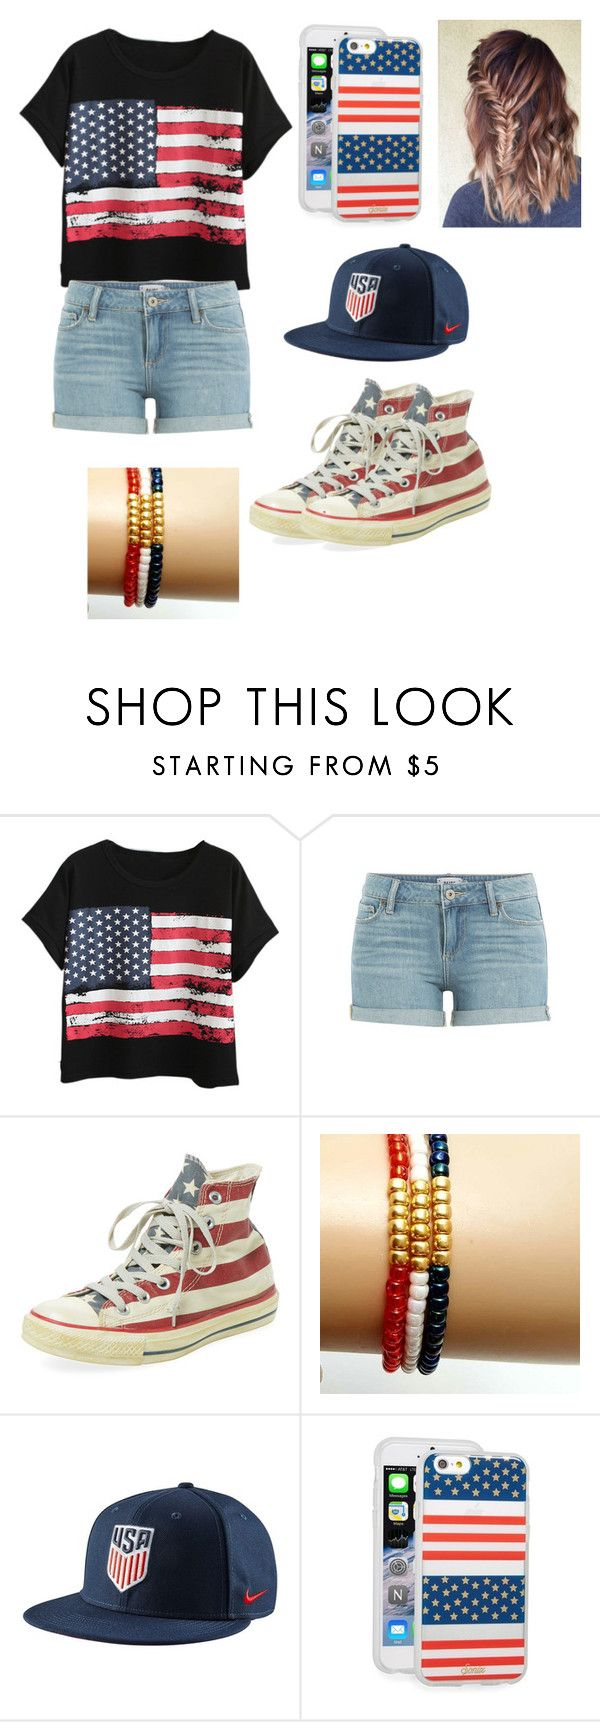 """""""Normal Team USA Spirit"""" by supsyd24 ❤ liked on Polyvore featuring Chicnova Fashion, Paige Denim, Converse, NIKE, Sonix, awesome, soccer, Olympics and summer2016"""